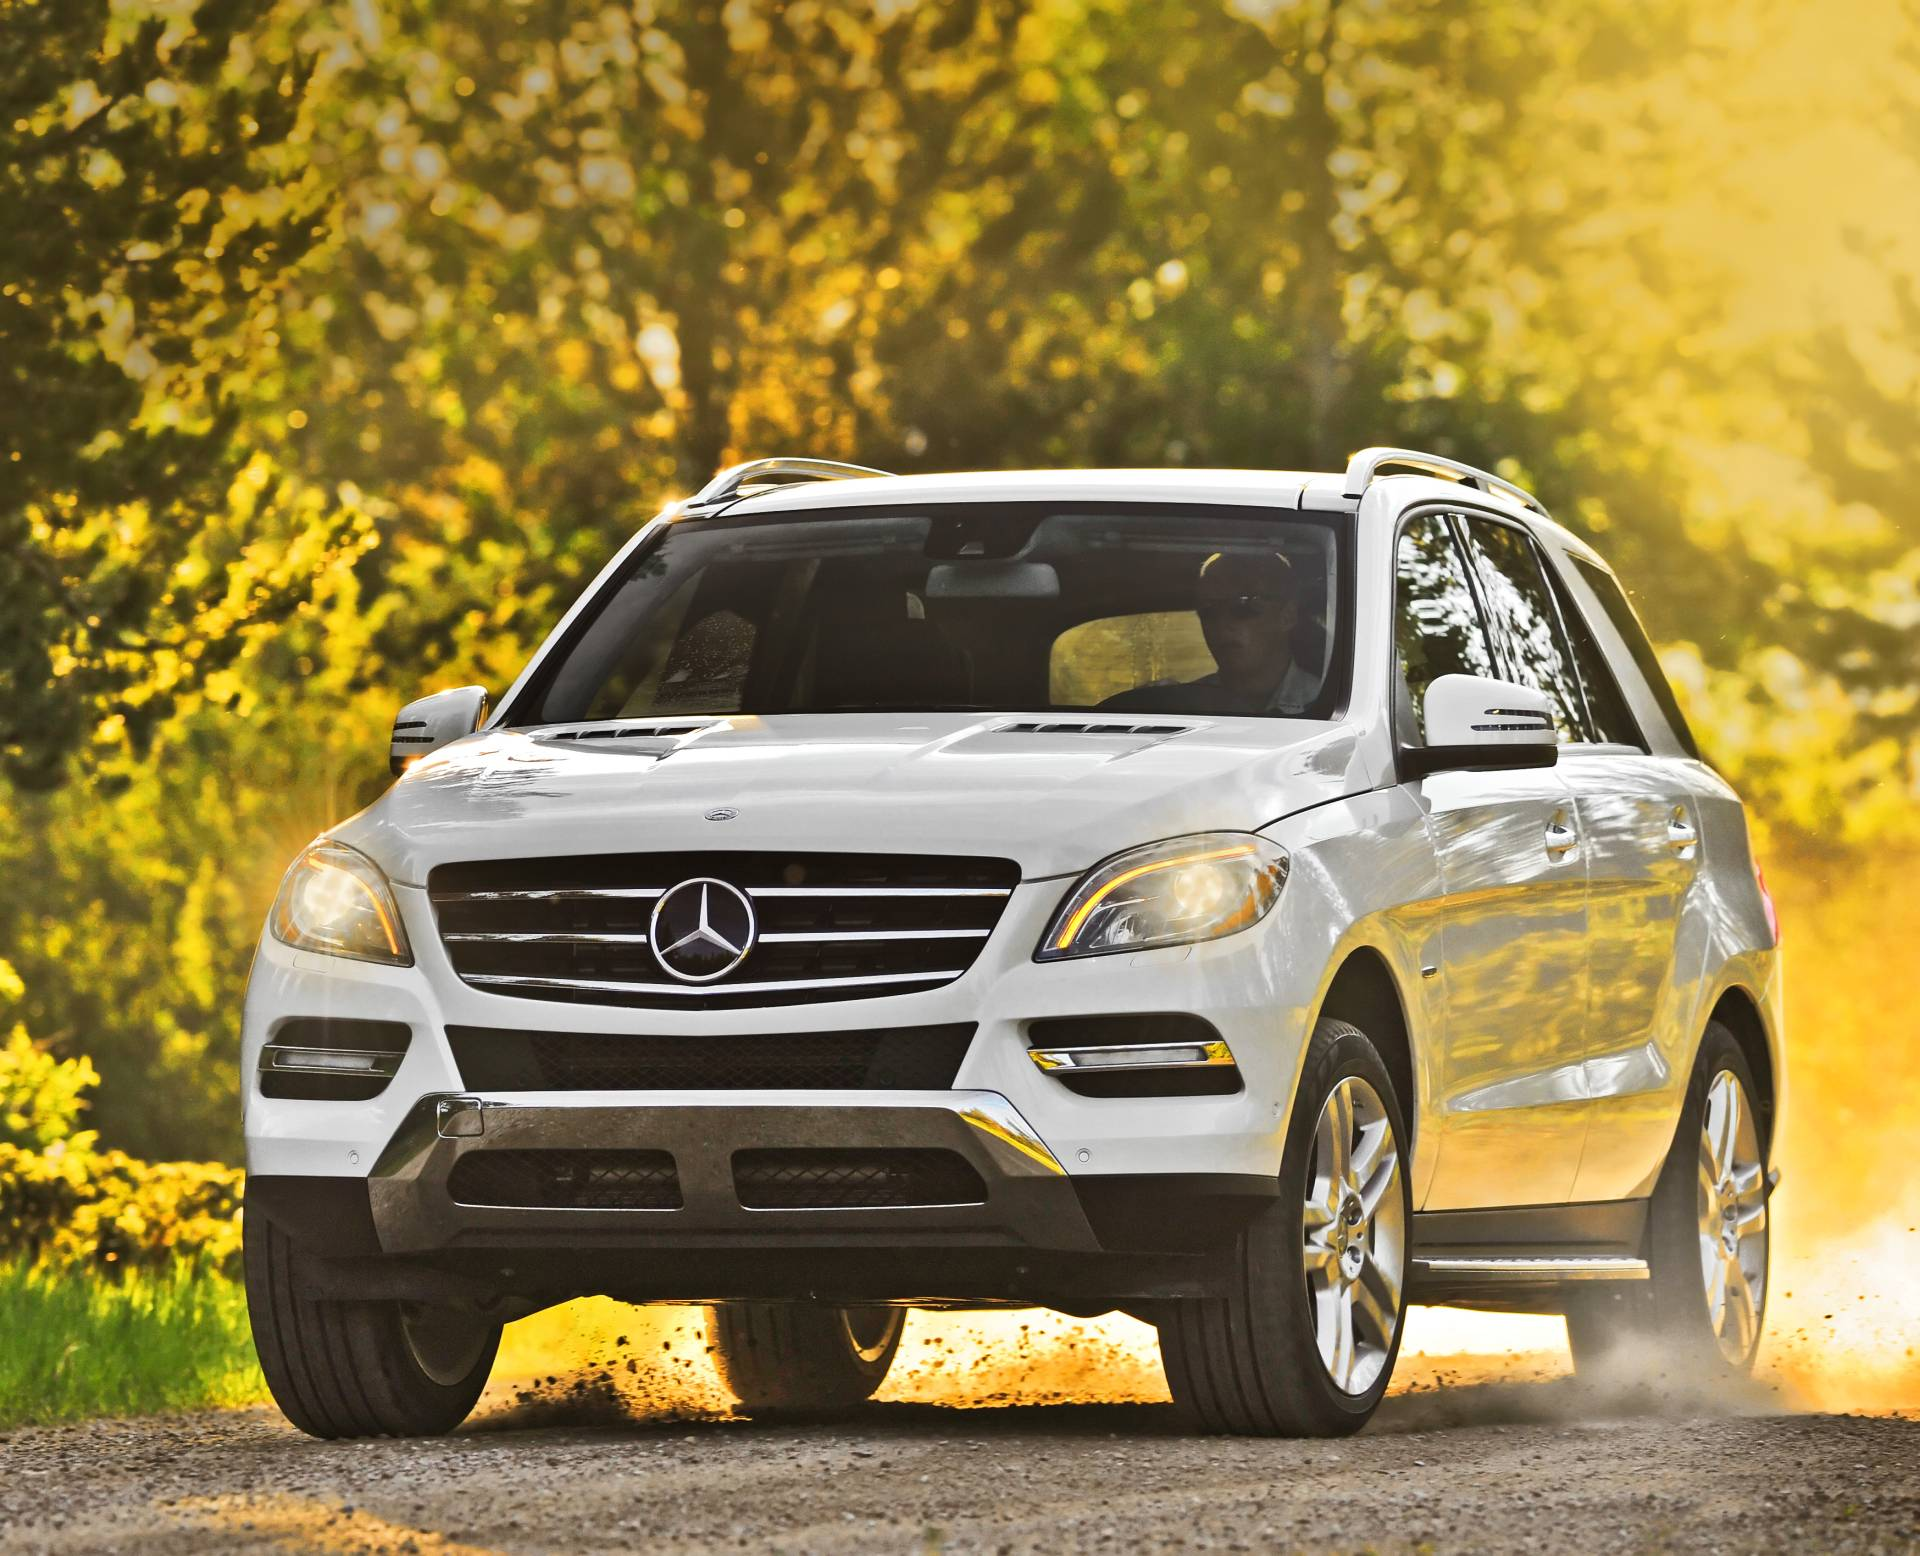 2013 mercedes benz ml350 blue tec news and information for 2013 mercedes benz ml 350